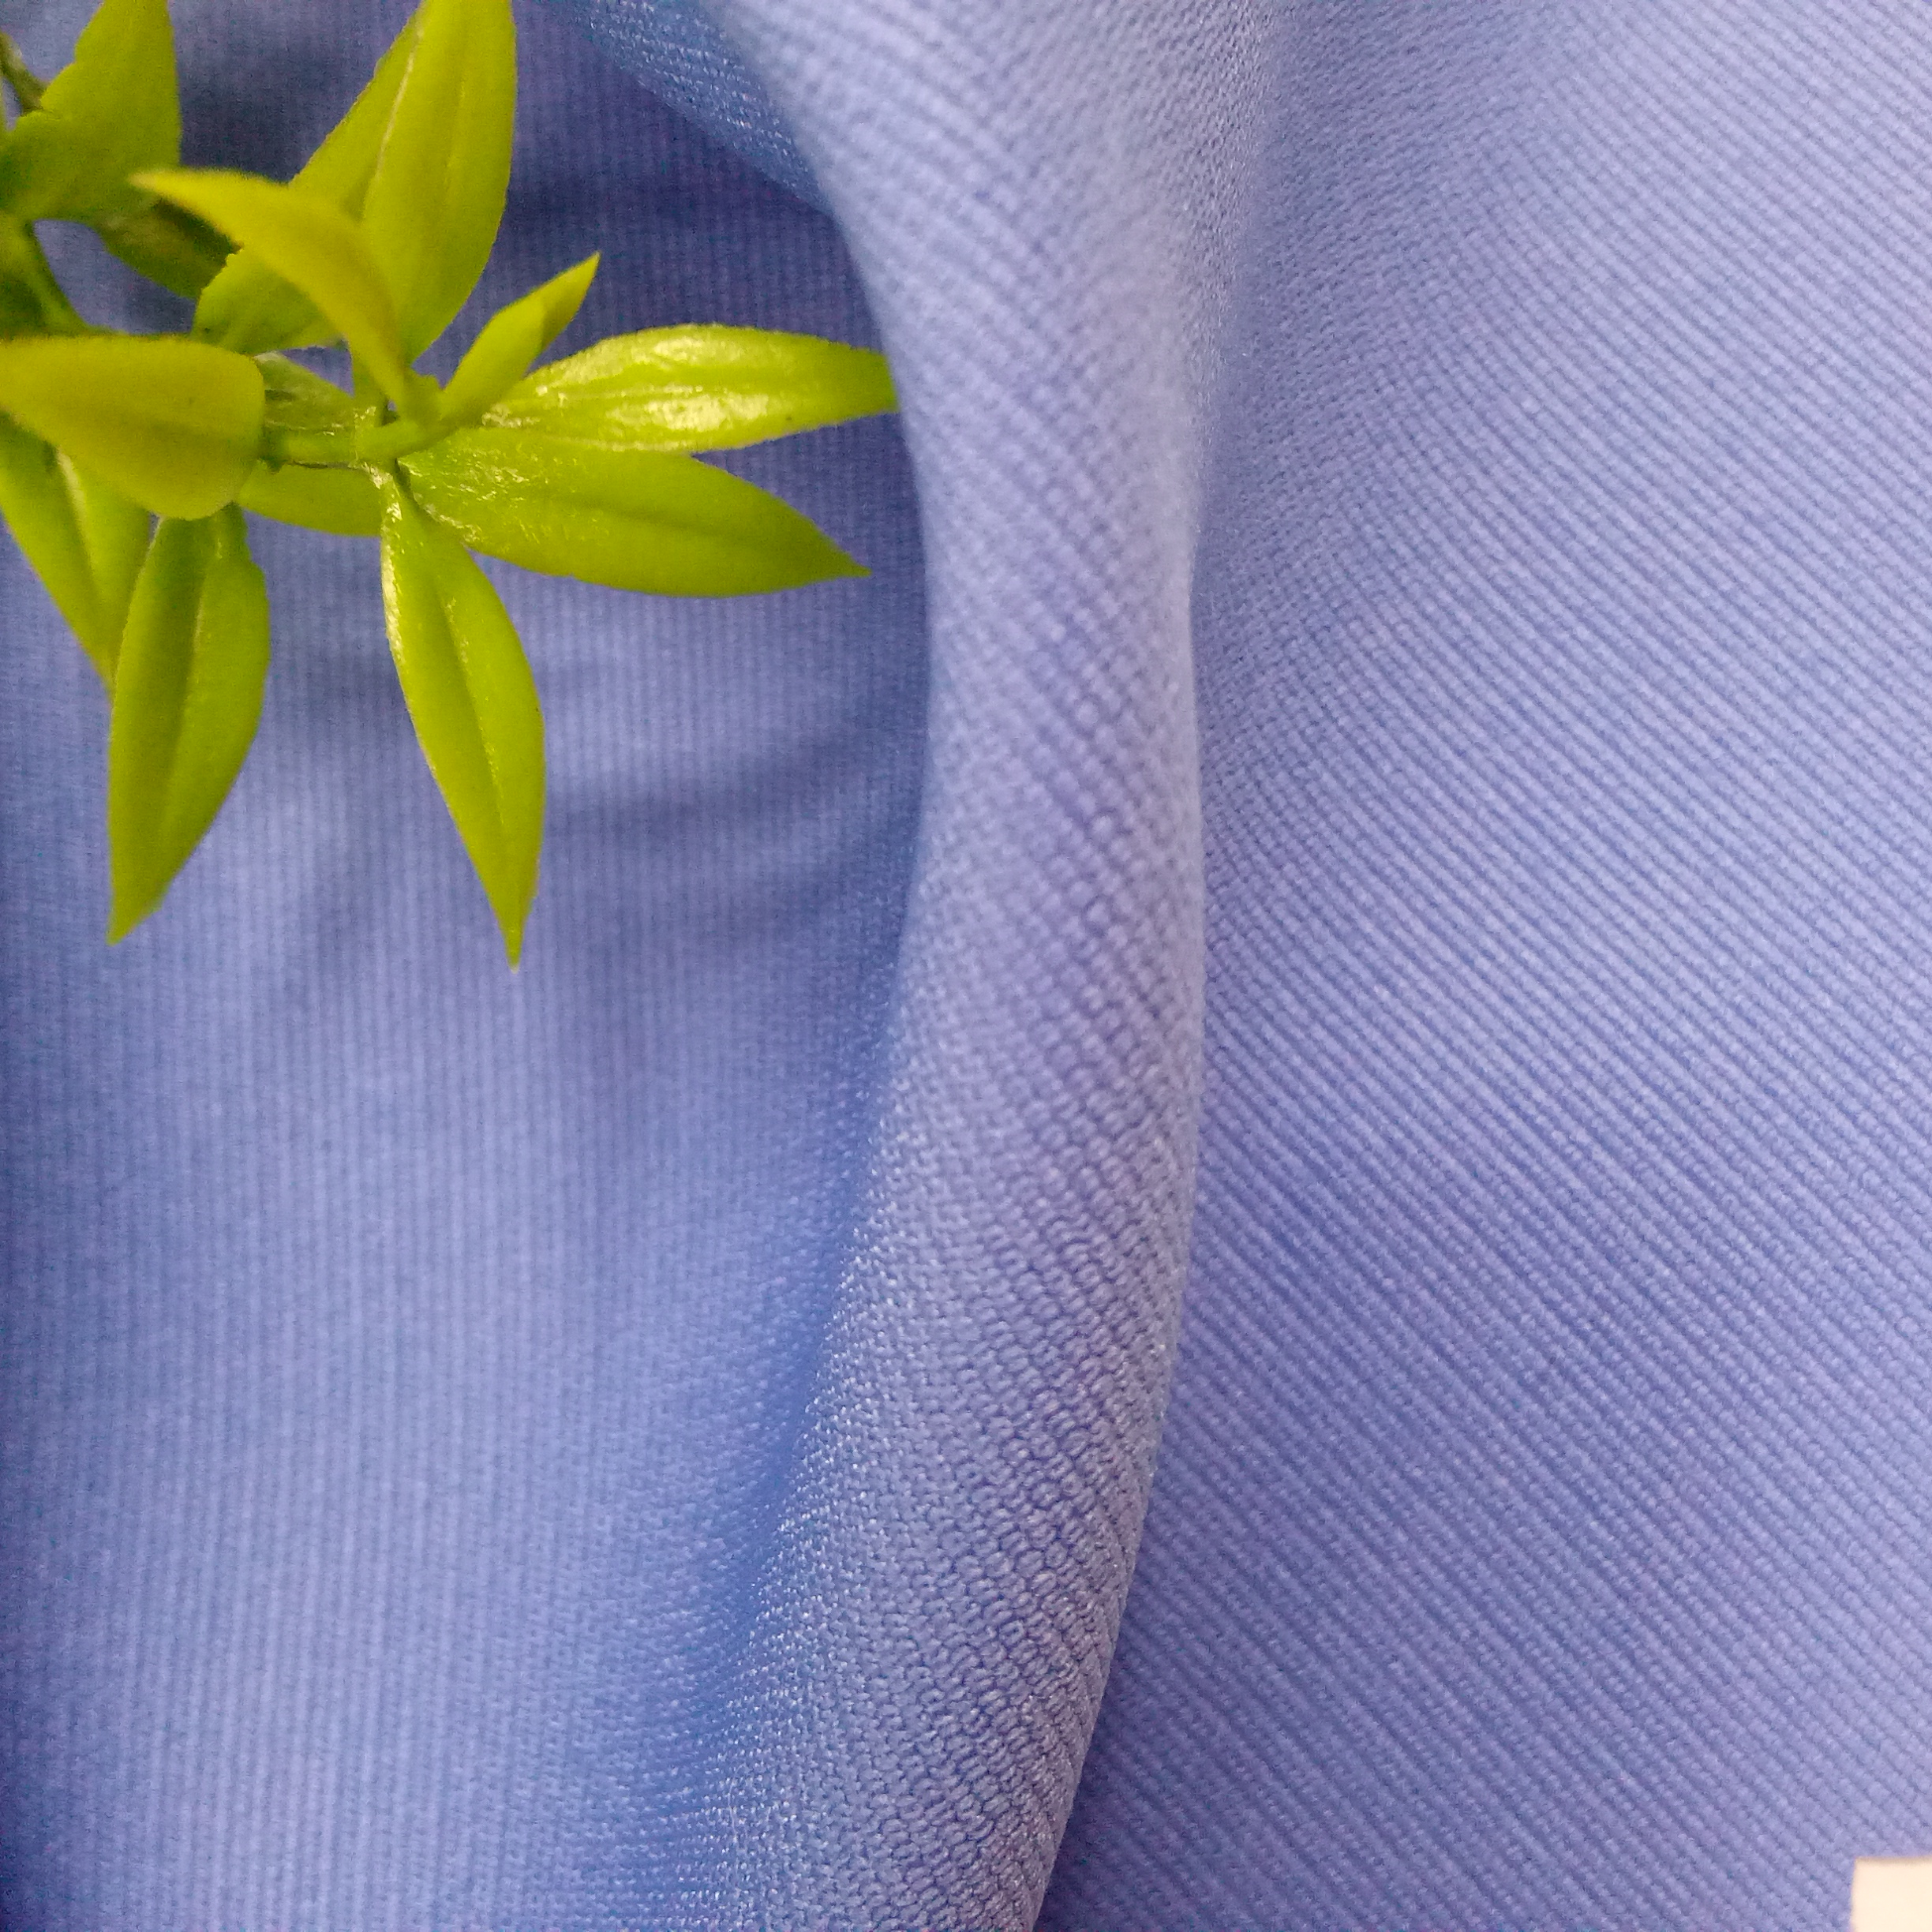 Manufacture Of <strong>Thick</strong> Clothing in Soft 100% Polyester Textile Fabric For Garment